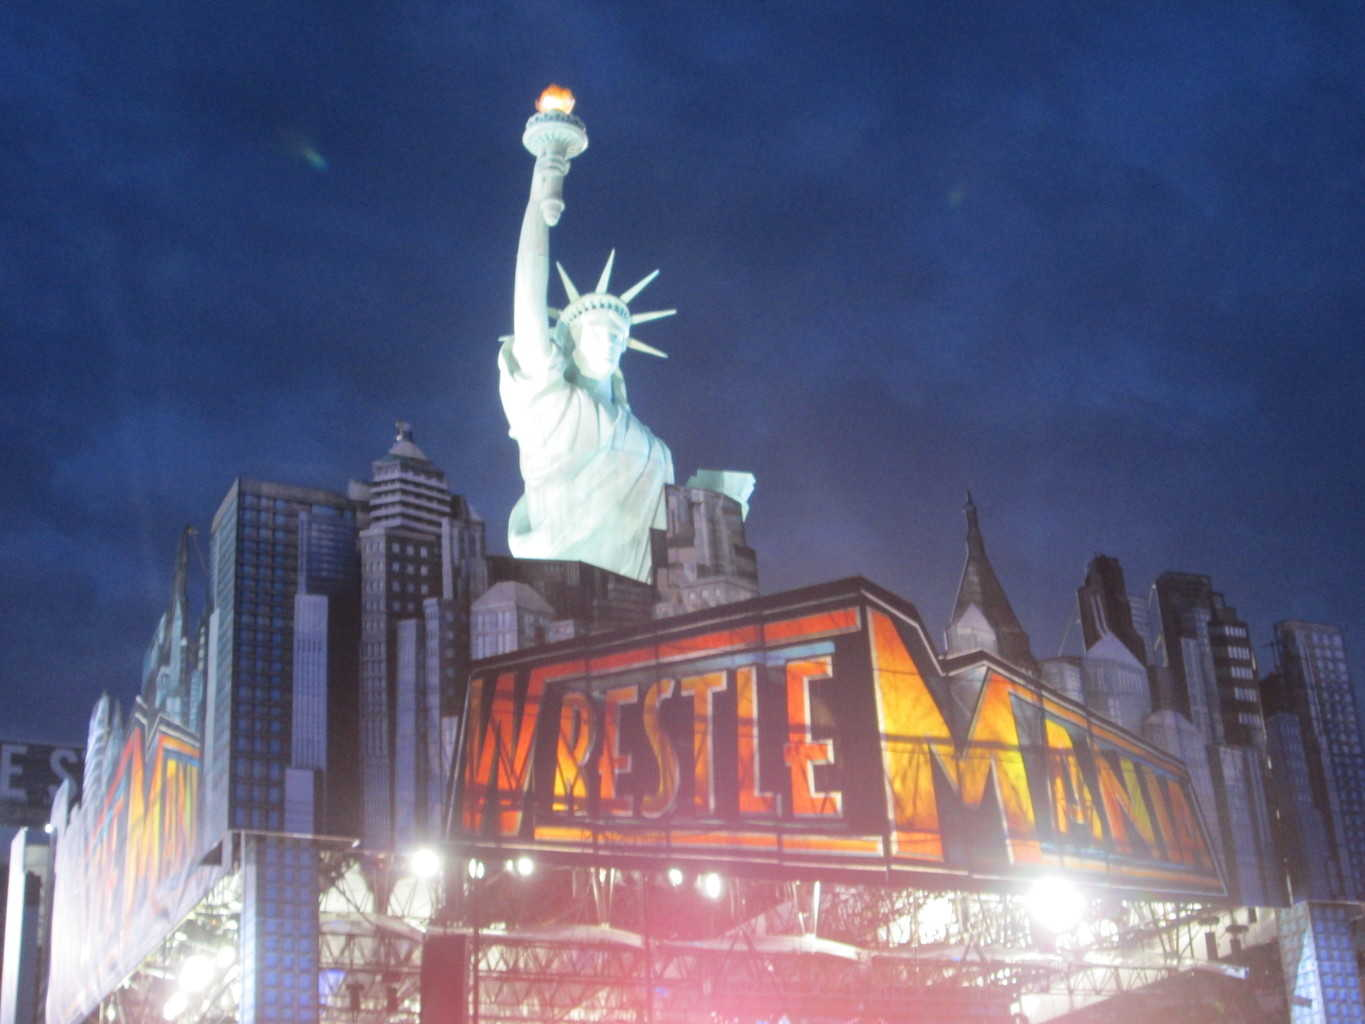 Escenario de Wrestlemania 29 / Photo by Alexa Ruiz - Superluchas